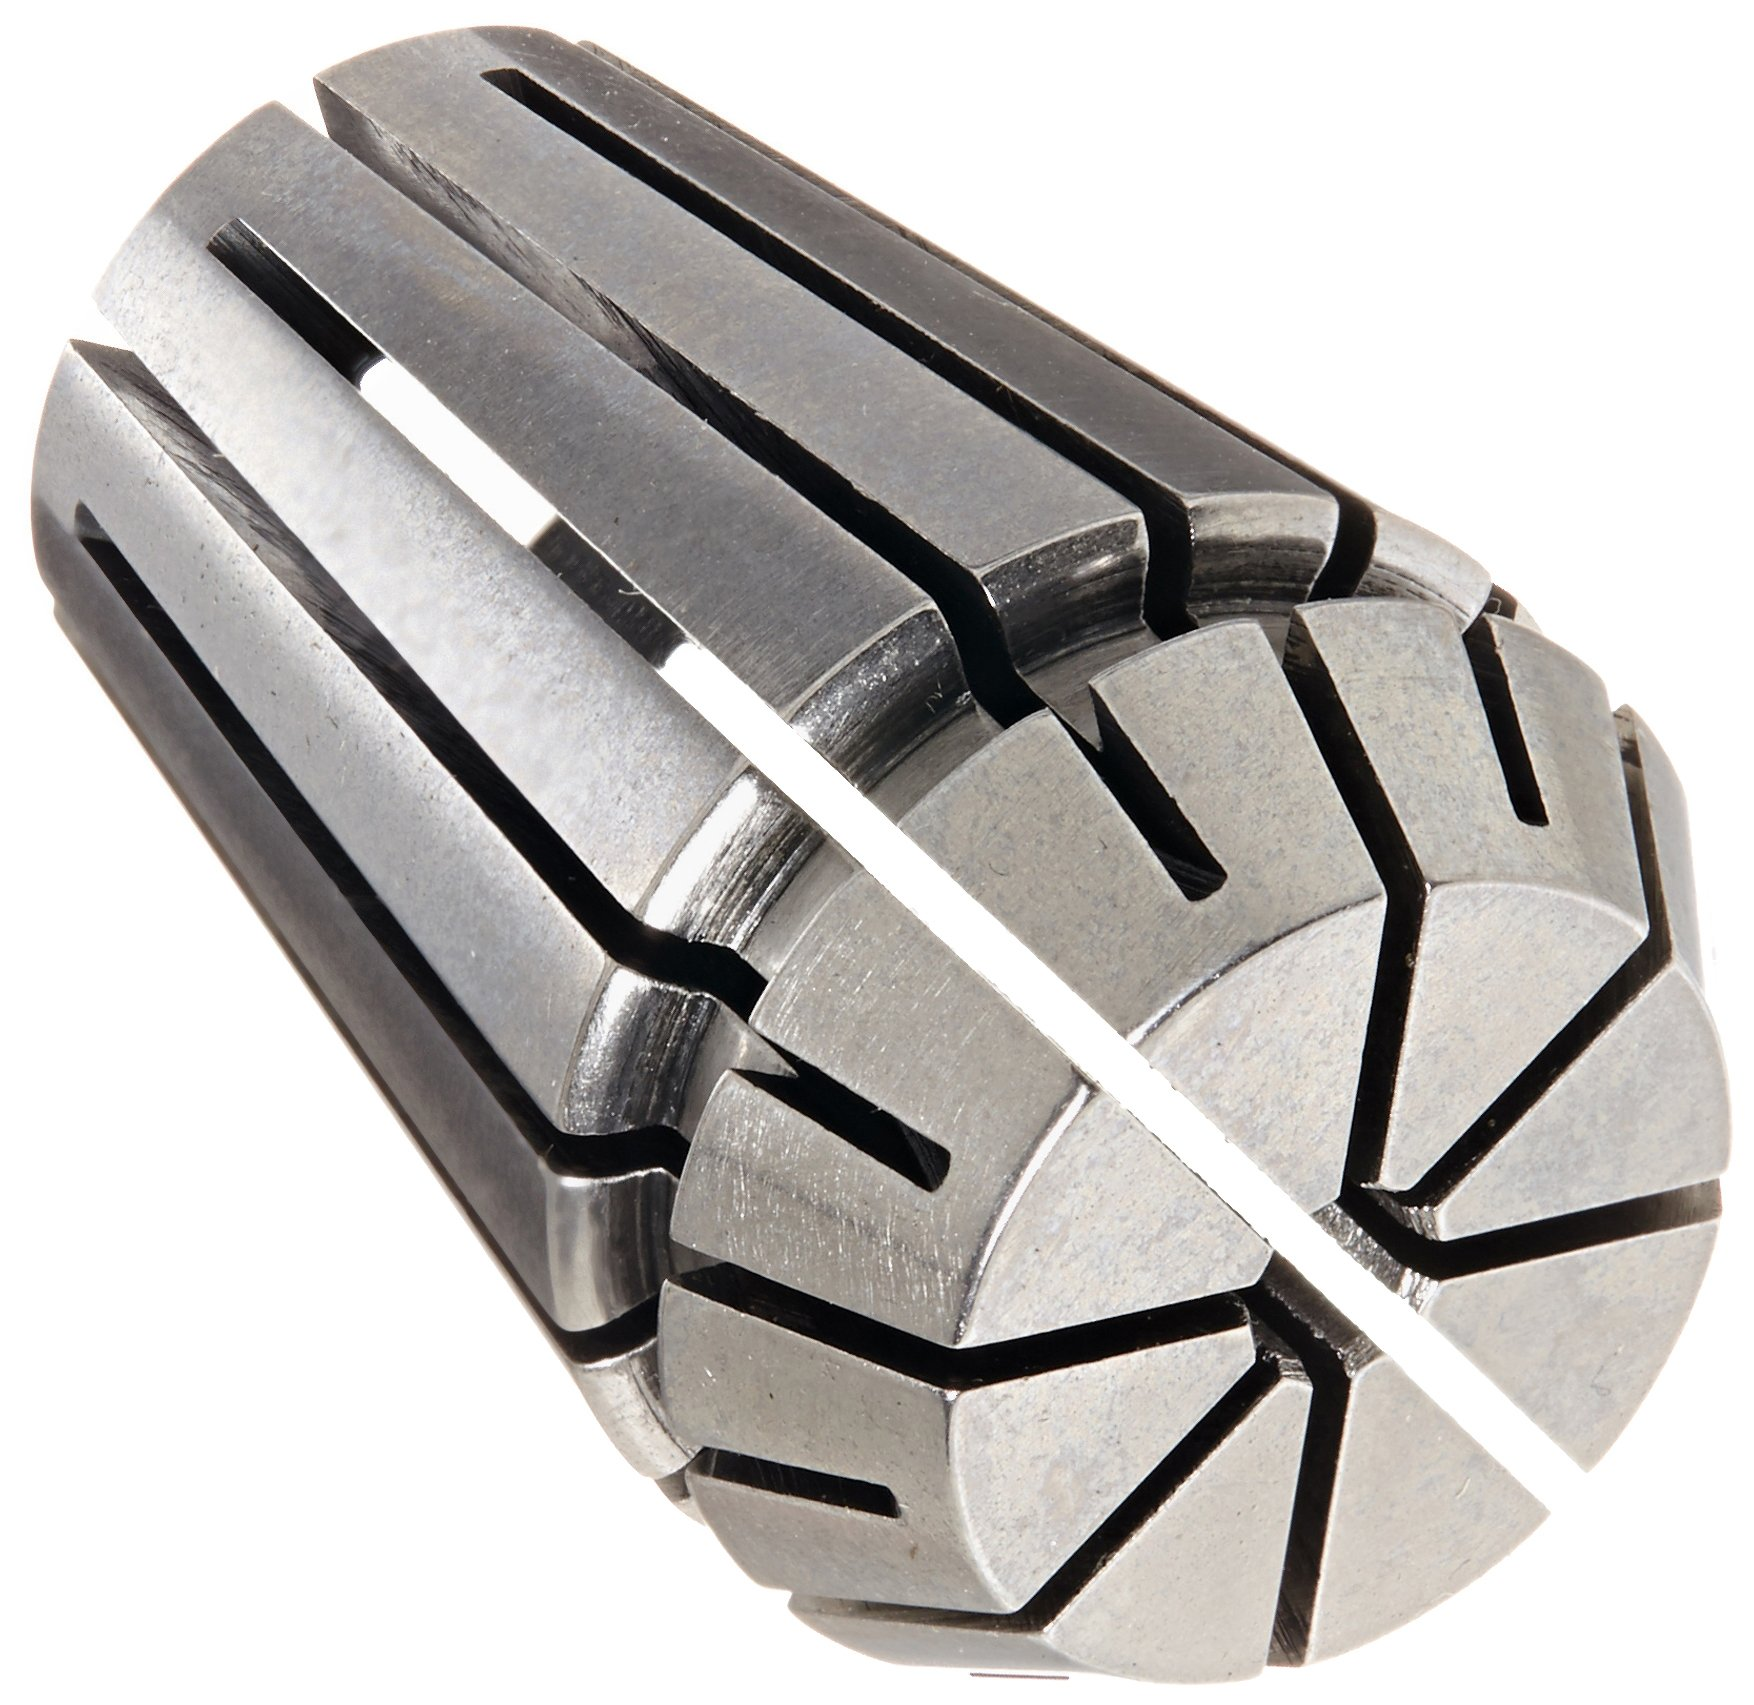 Dorian Tool ER20 Alloy Steel Ultra Precision Collet, 0.087'' - 0.125'' Hole Size